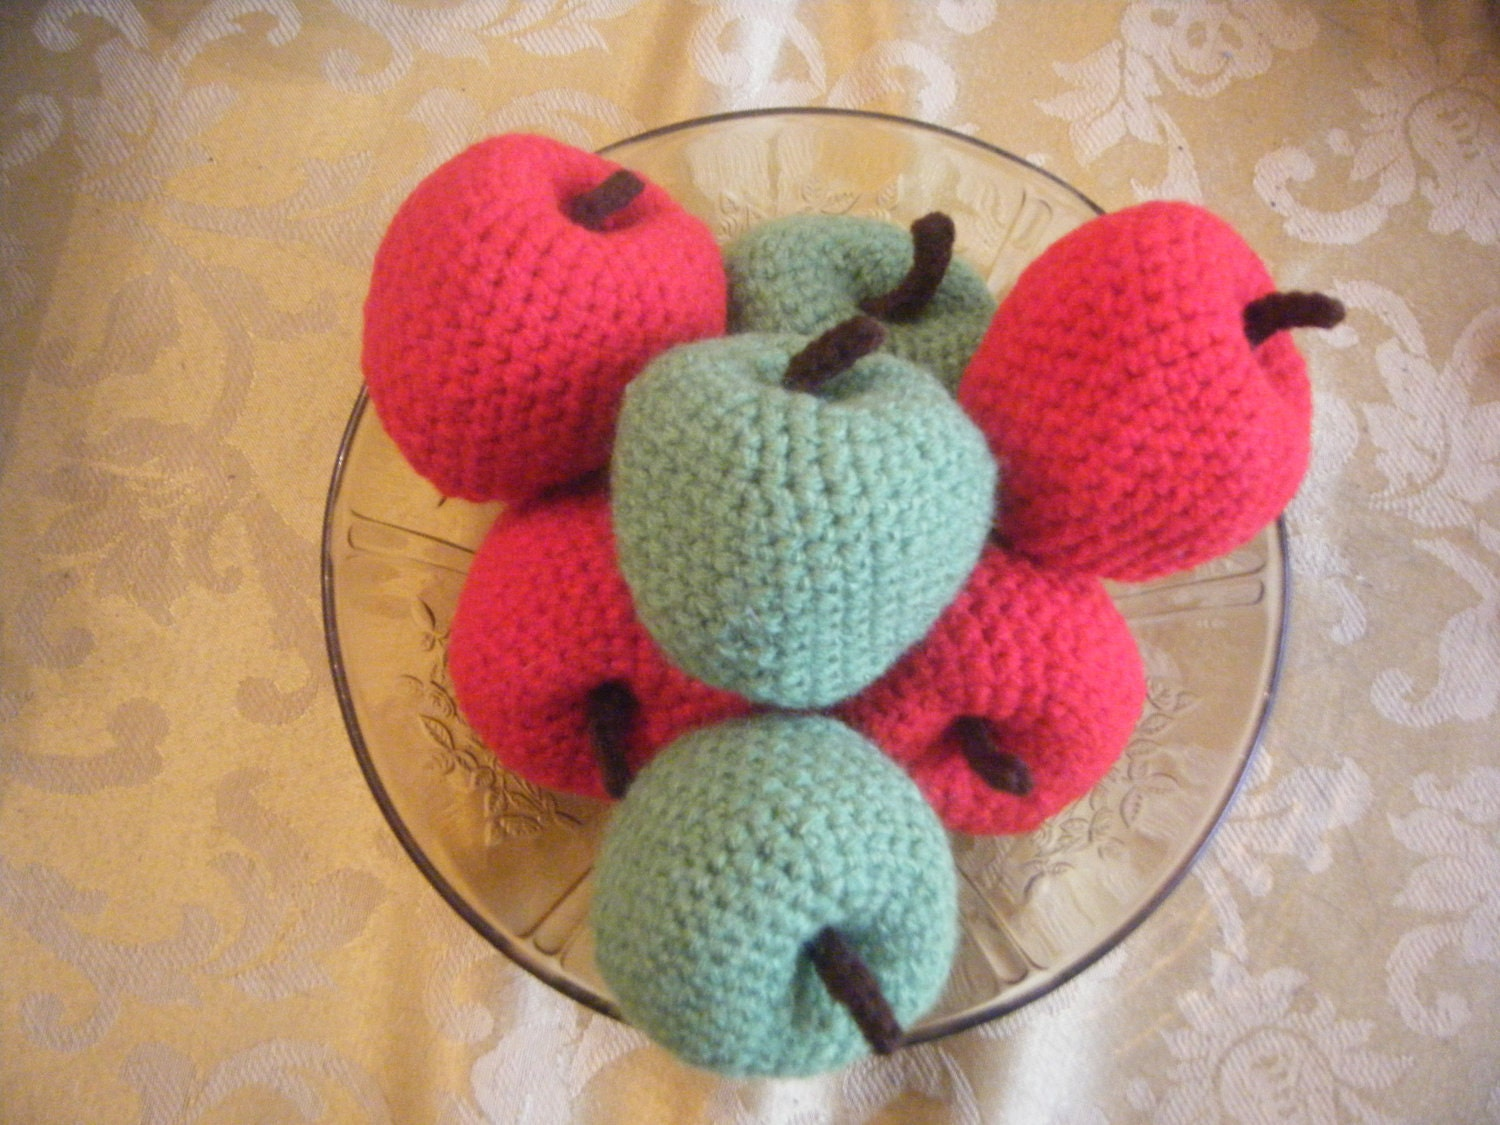 il 170x135.277181049 Etsy Crochet Treasury: Apples and Apples